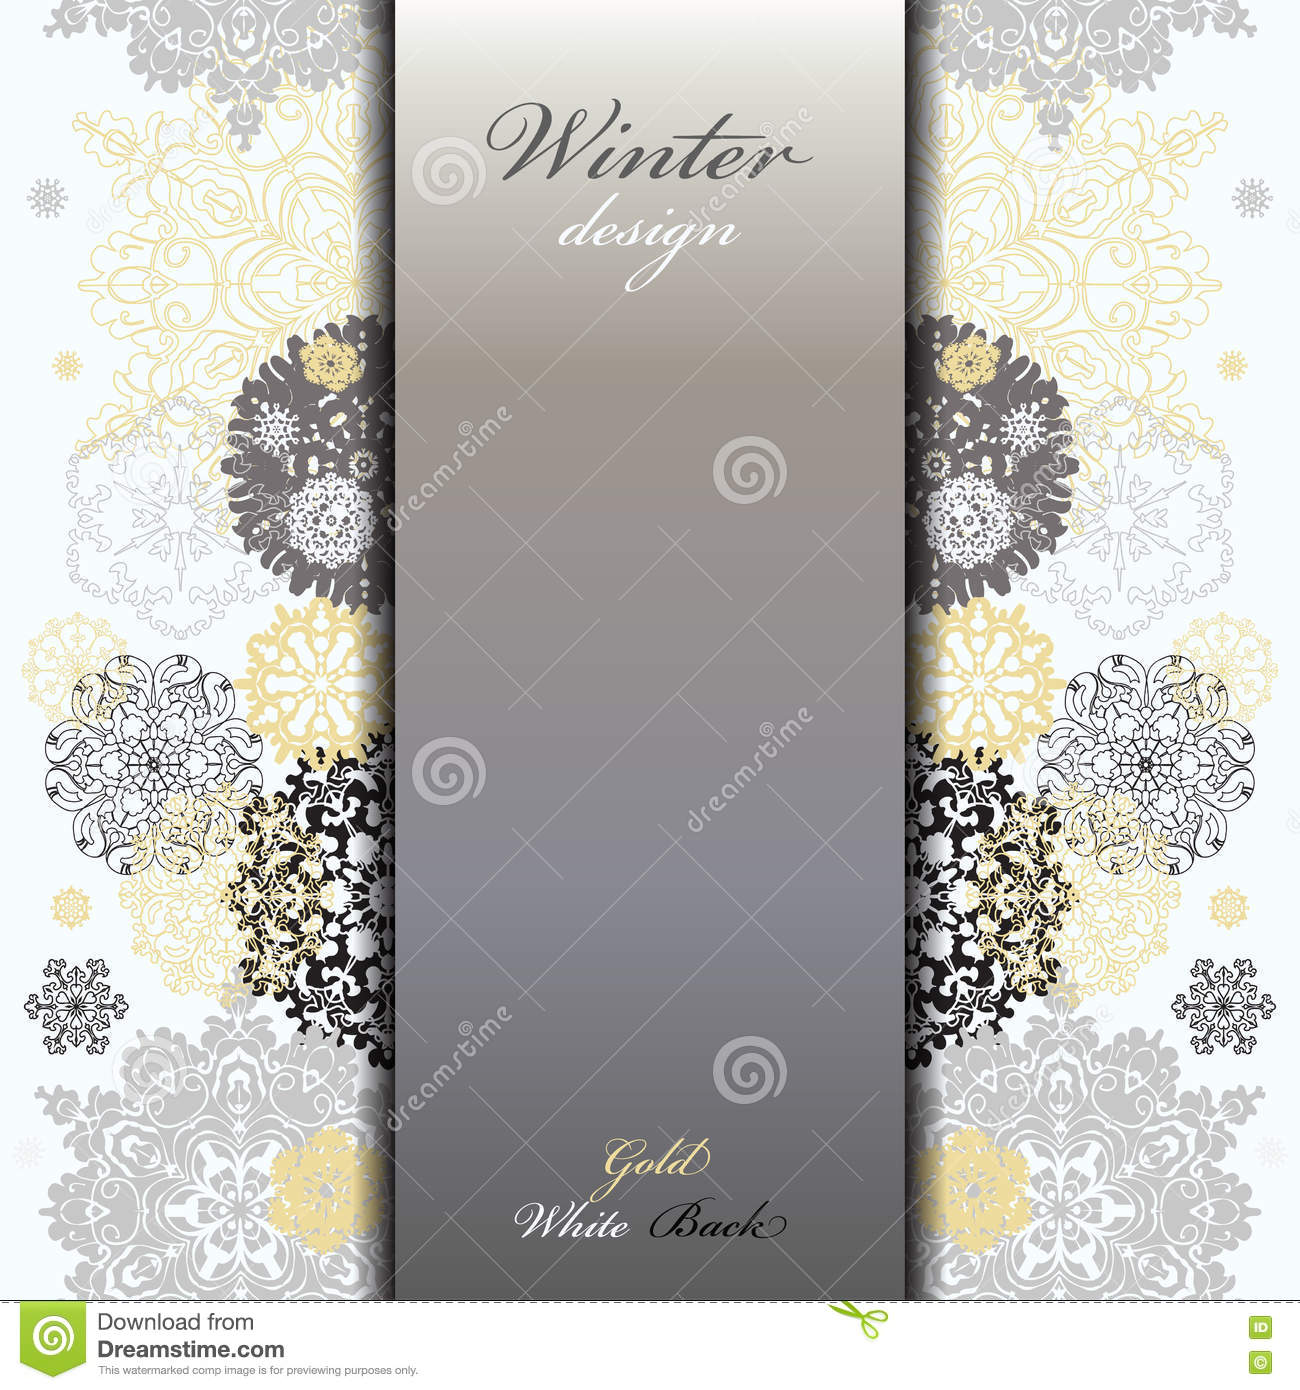 Background image vertical center - Winter Design With Silver White Snowflakes Stock Vector Abstract Background Border Center